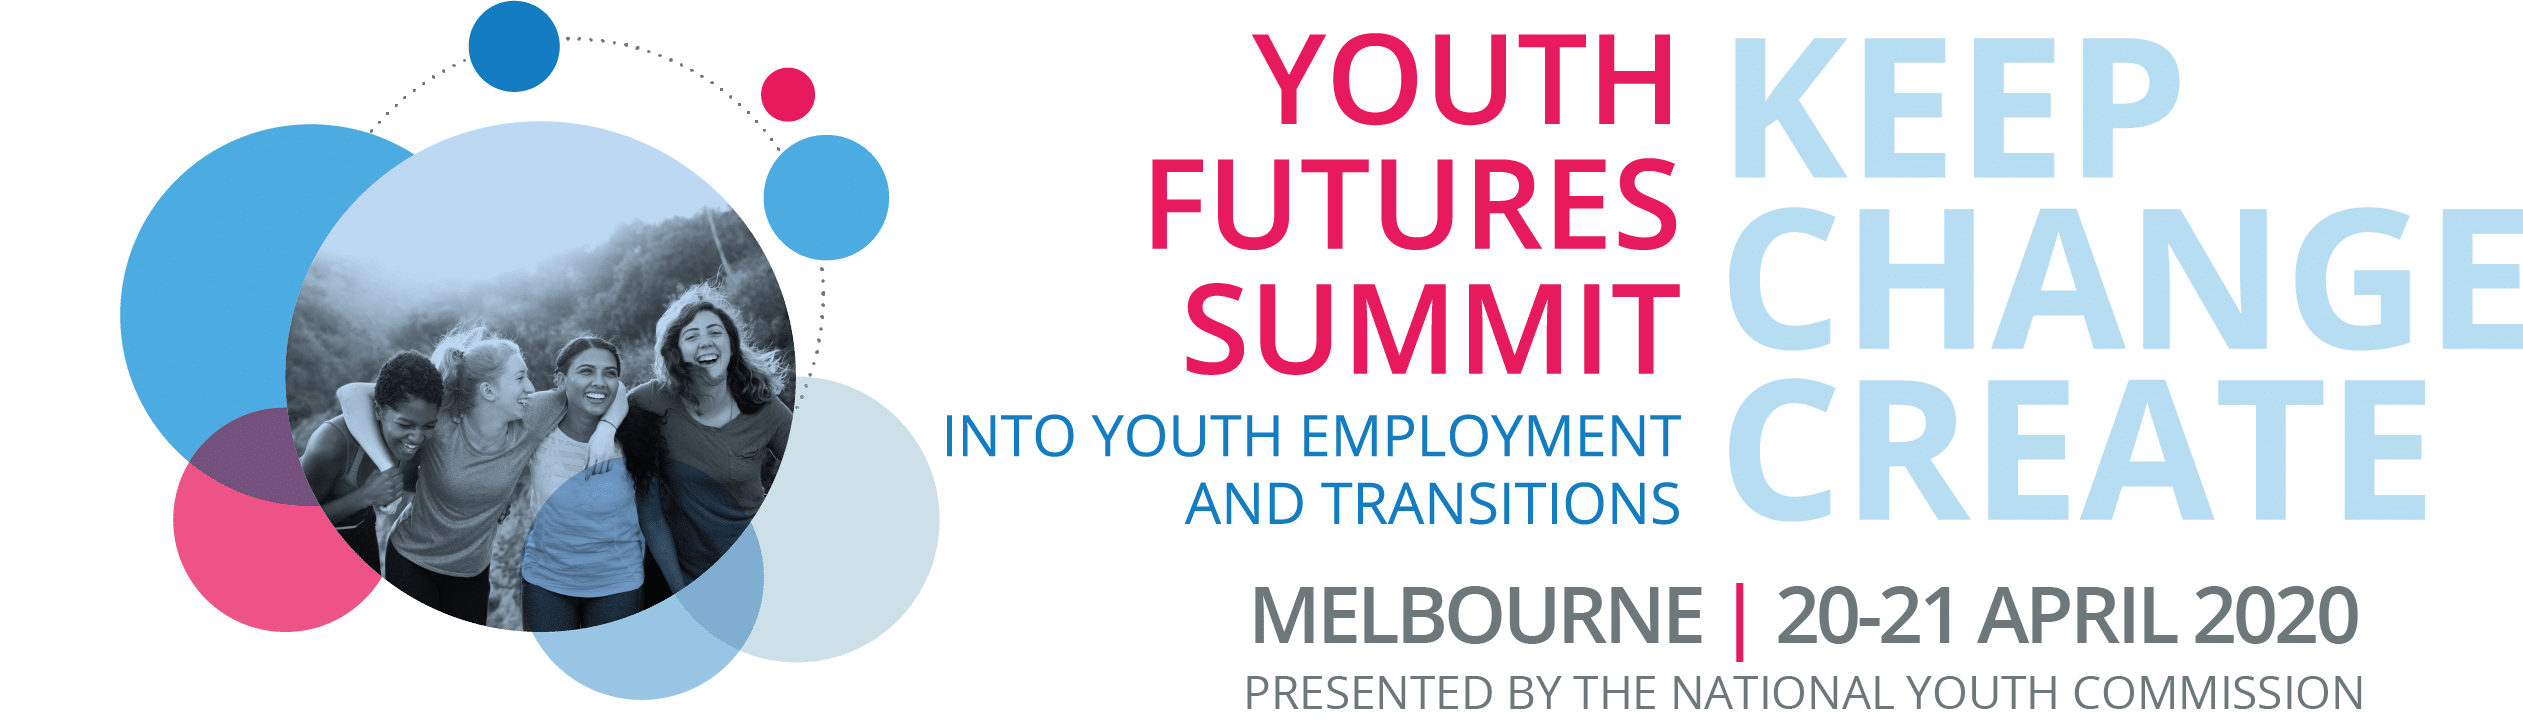 Youth Future Summit